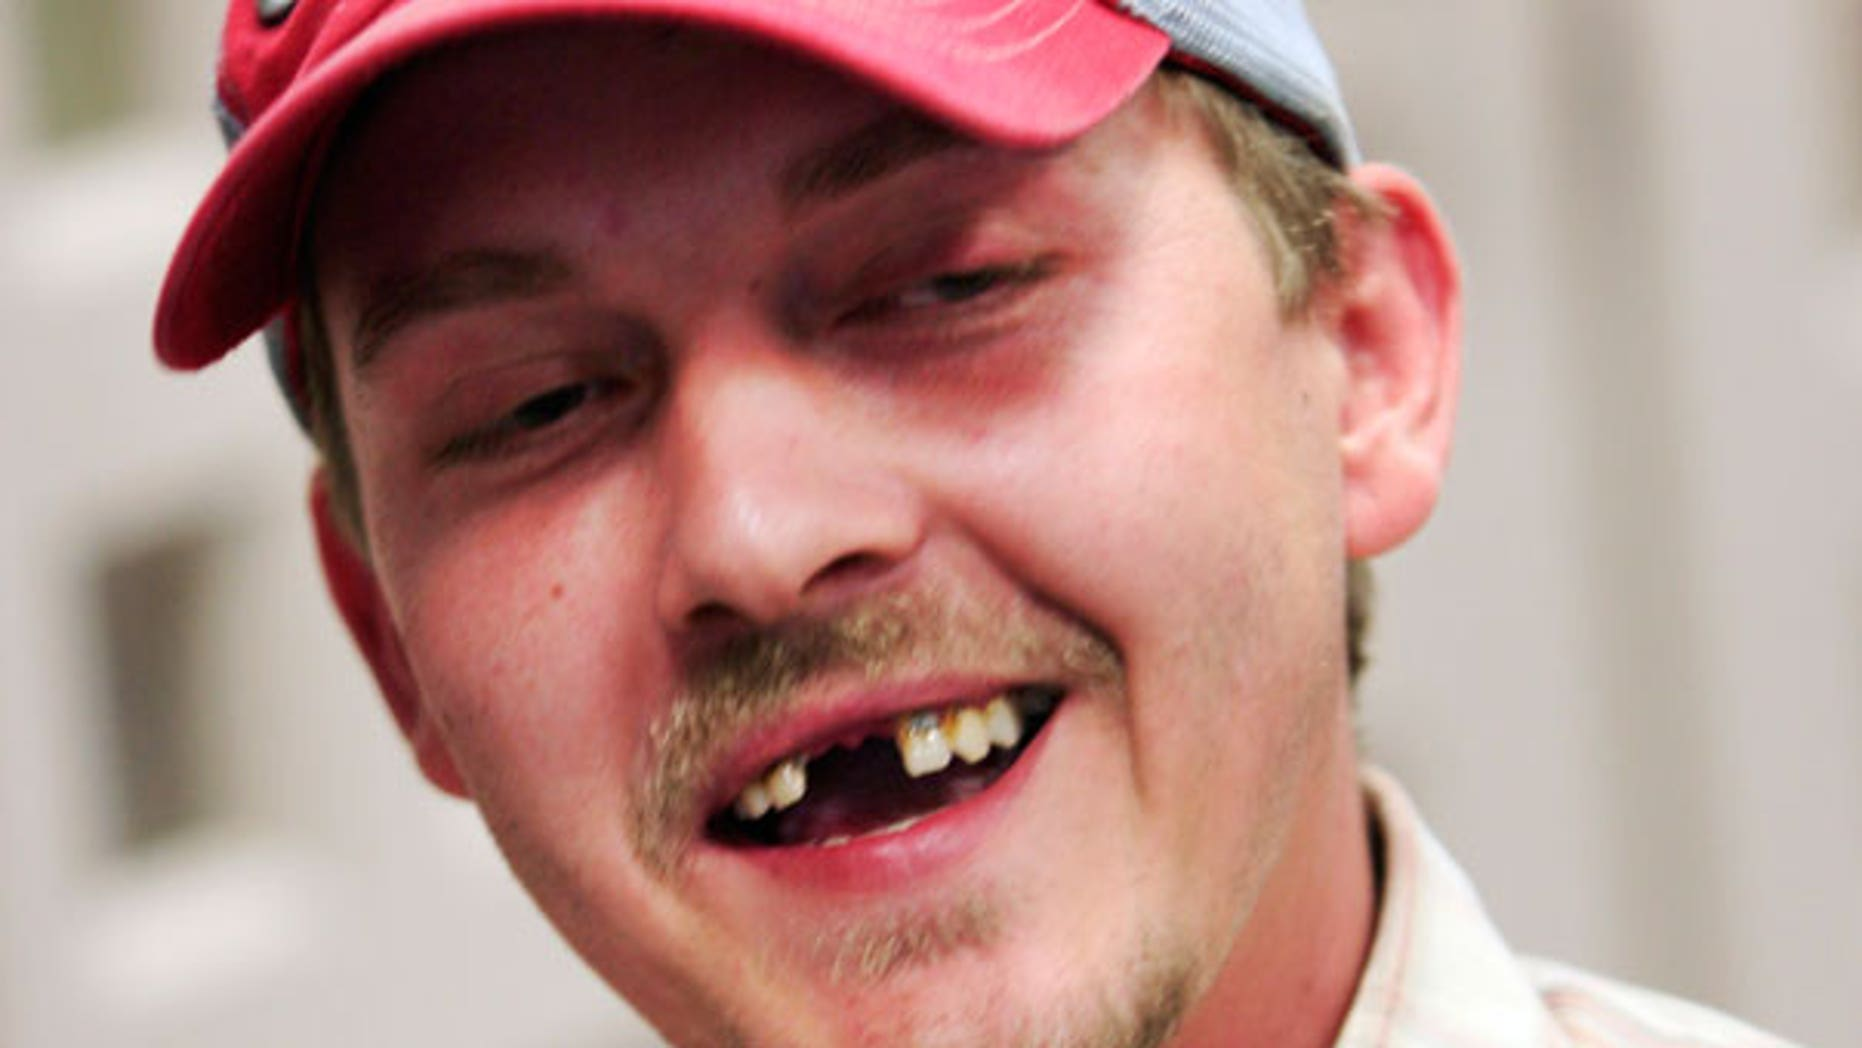 April 22: Lottery winner Christopher Shaw, 29, smiles while talking with reporters following a ceremony at the Missouri Lottery offices in Jefferson City.